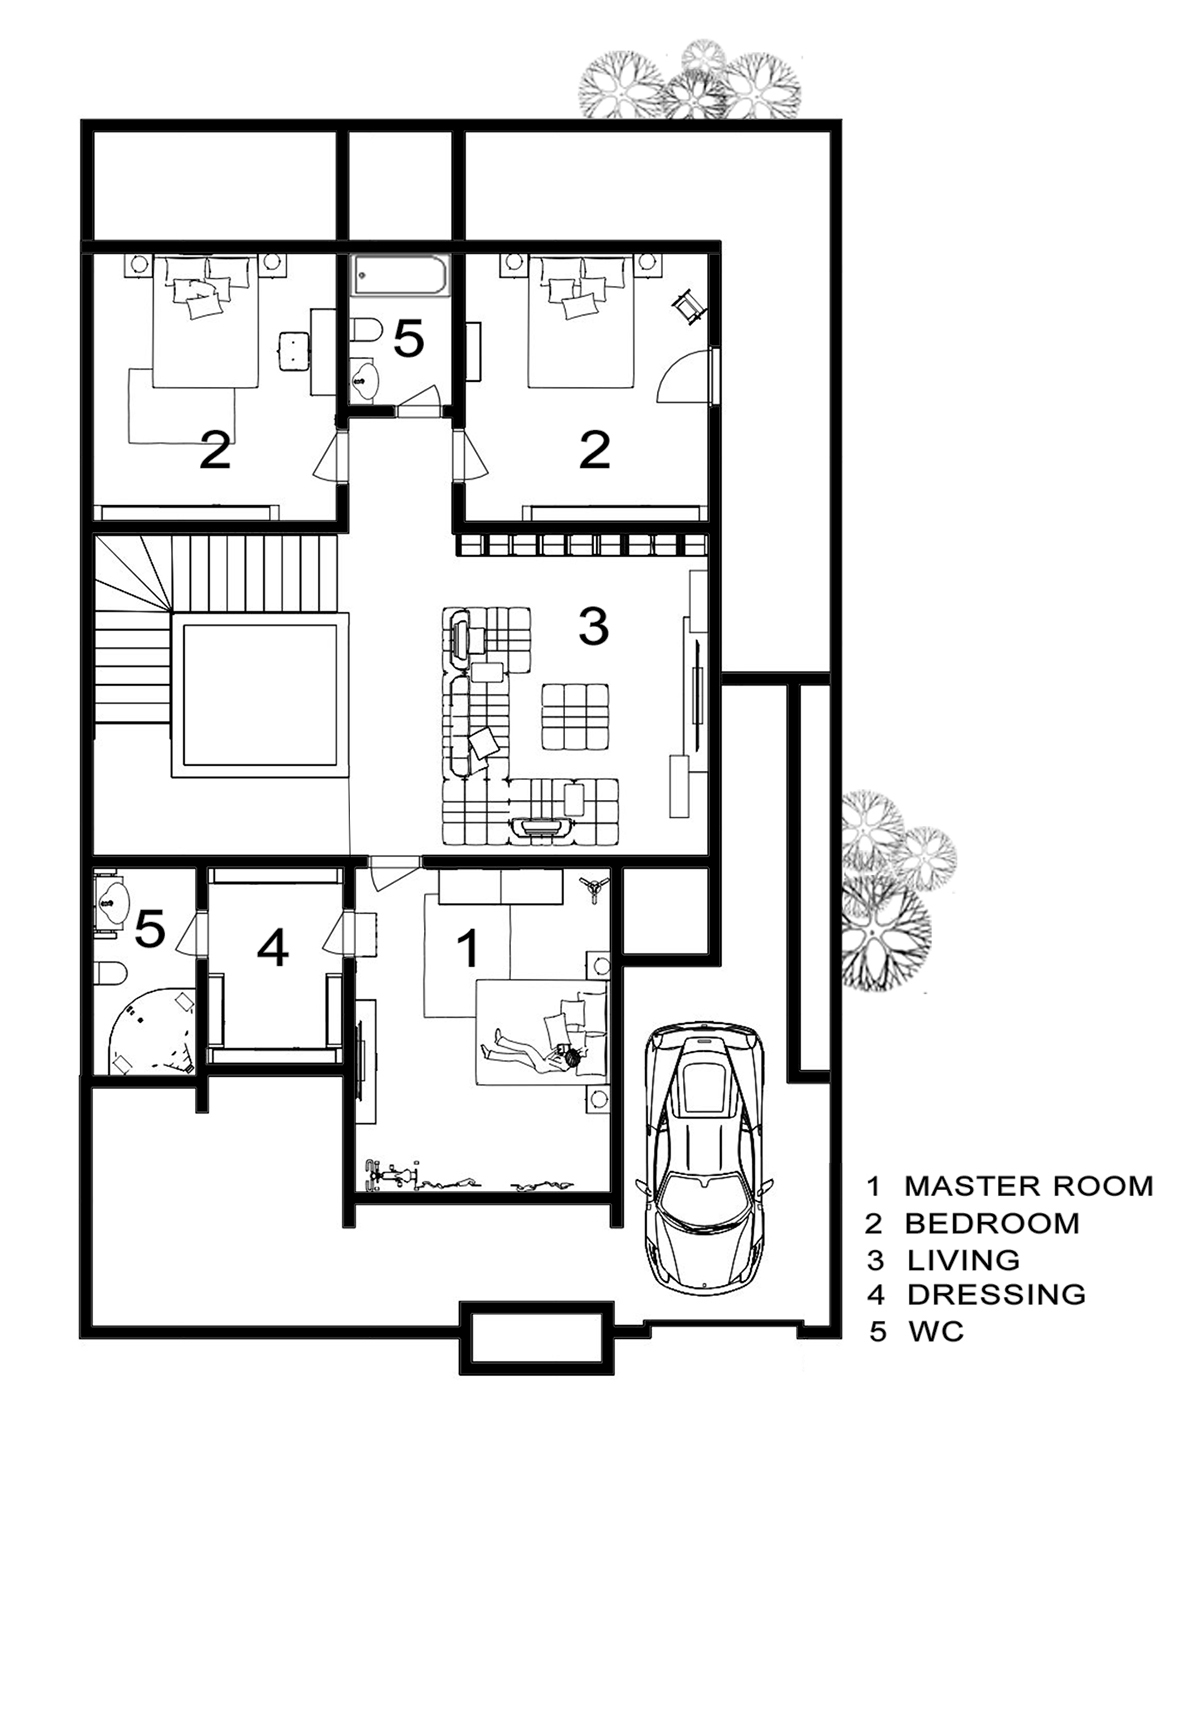 Villa duplex on behance for House map drawing